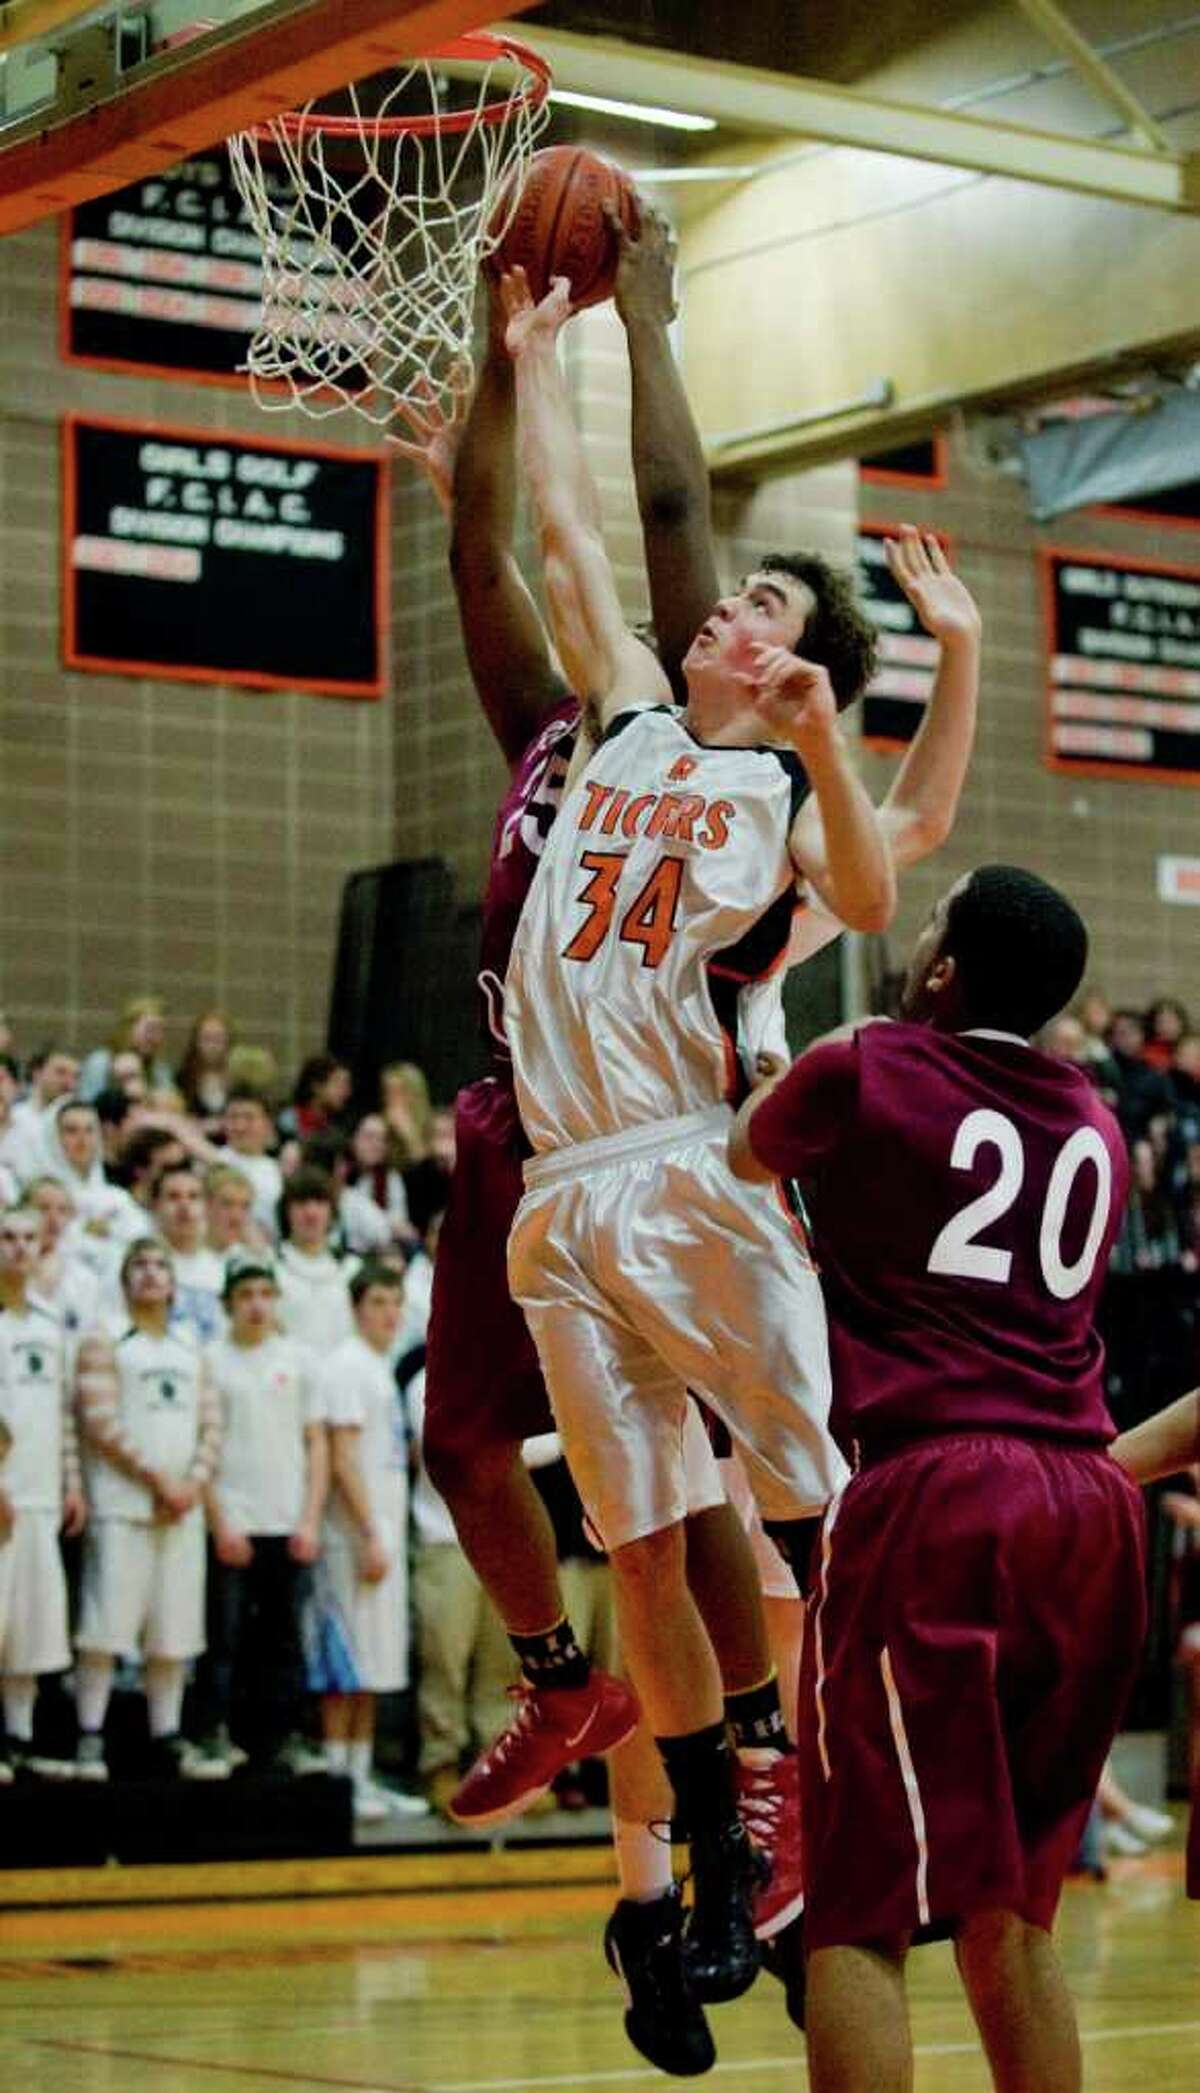 Ridgefield High School's Seth von Kuhn goes up for a shot against Bulkeley High School in a game played at Ridgefield. Tuesday, Mar. 6, 2012